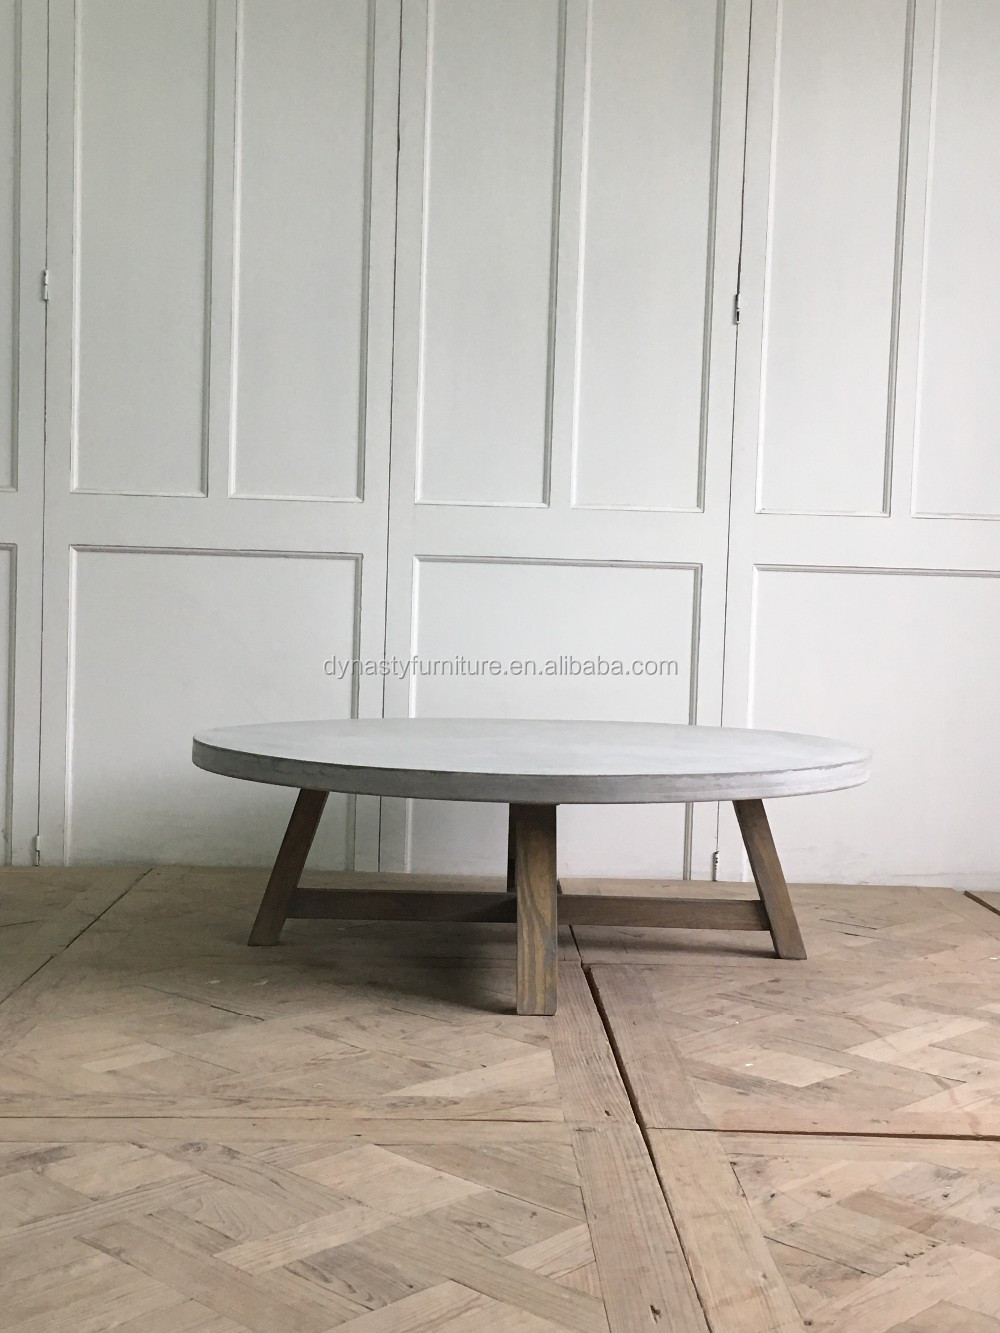 wooden coffee table legs with antique concrete top coffee table buy coffee table wooden coffee table antique coffee table product on alibaba com